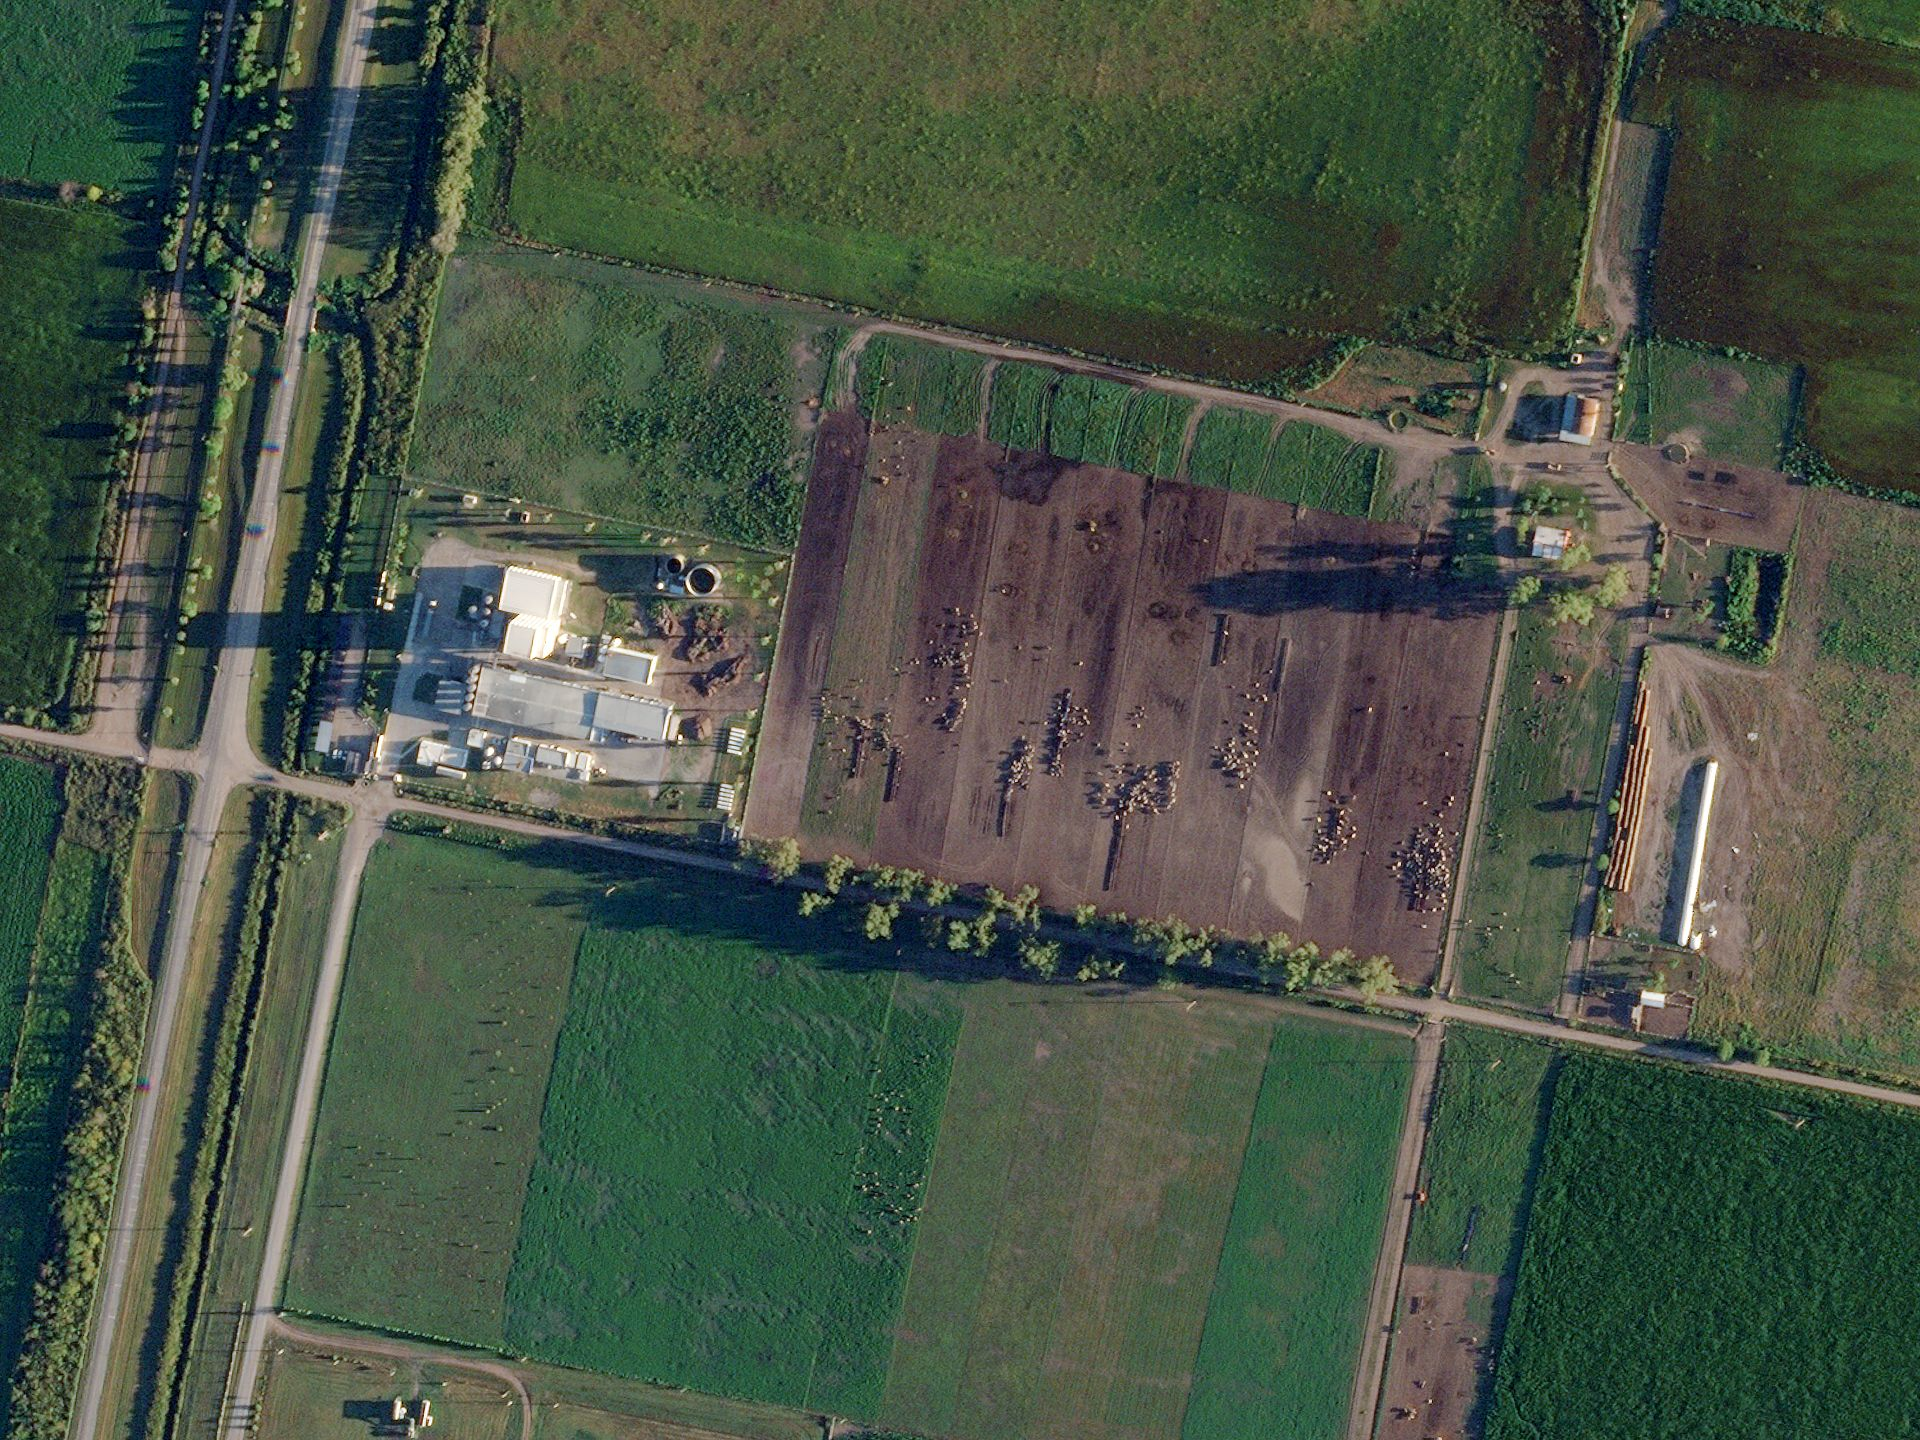 Morning sunlight highlights individual livestock near the Lactear Dairy in Córdoba, Argentina. © 2021, Planet Labs Inc. All Rights Reserved.